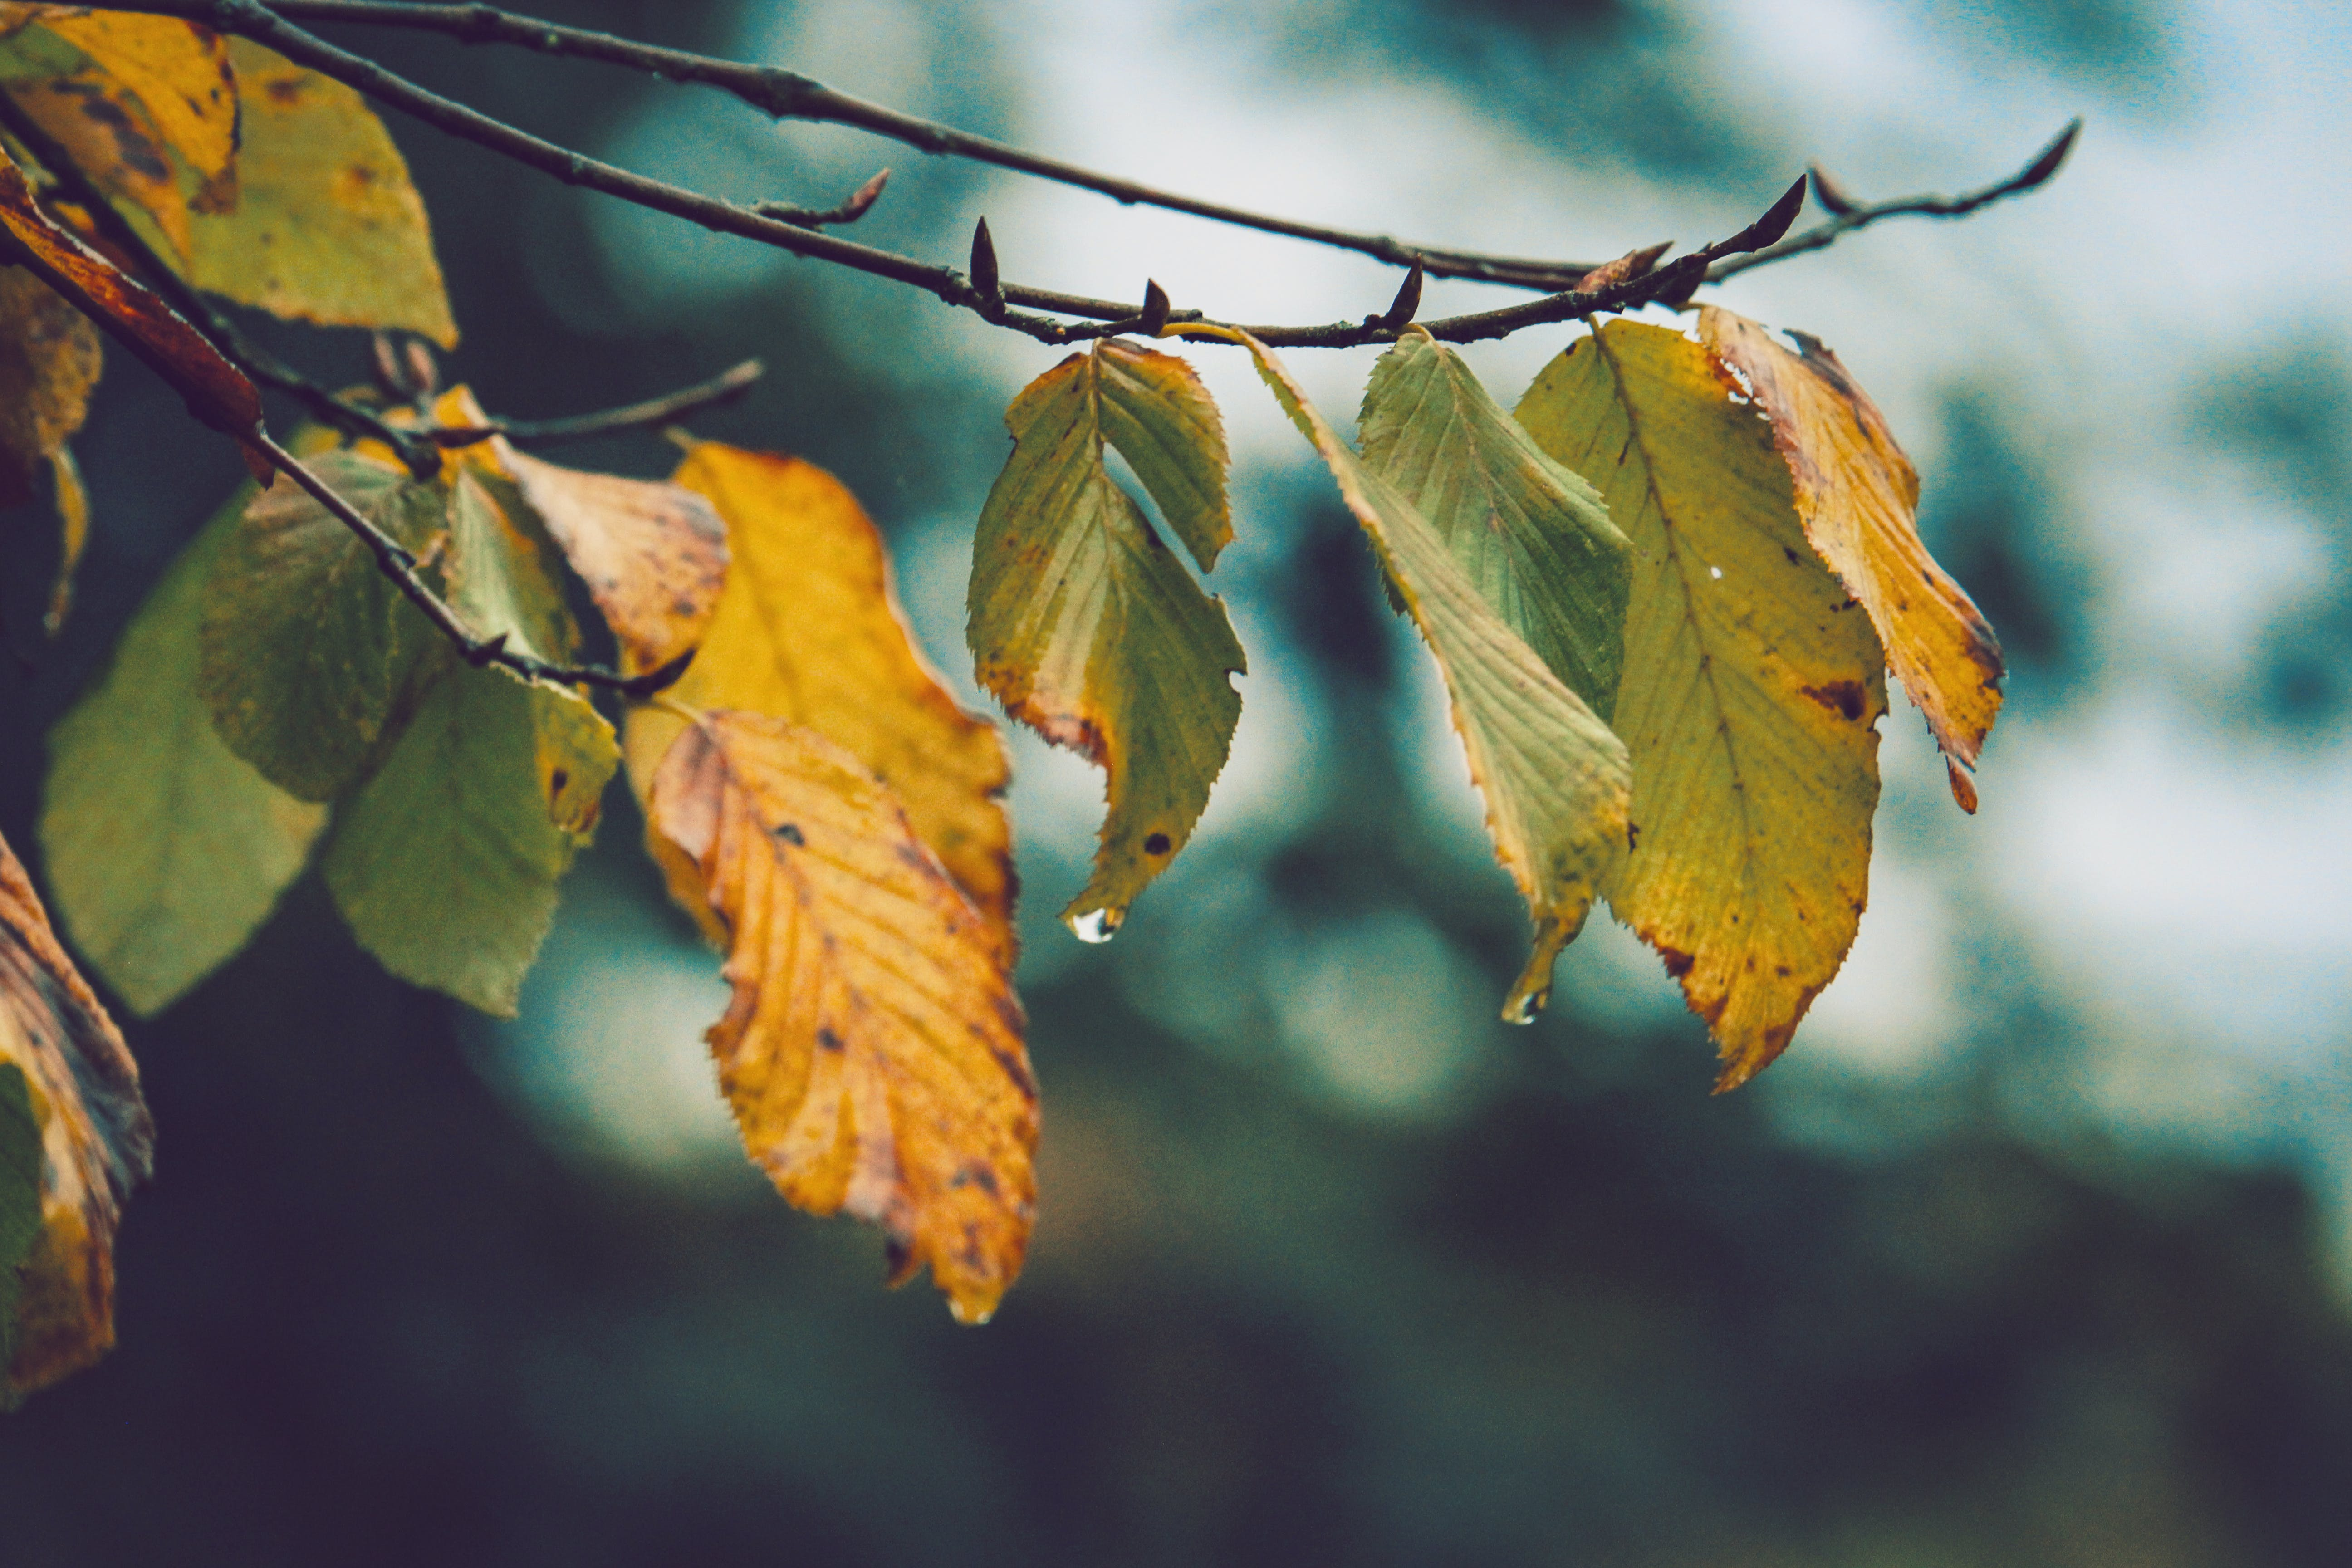 Withered Leaves Close-up Photo